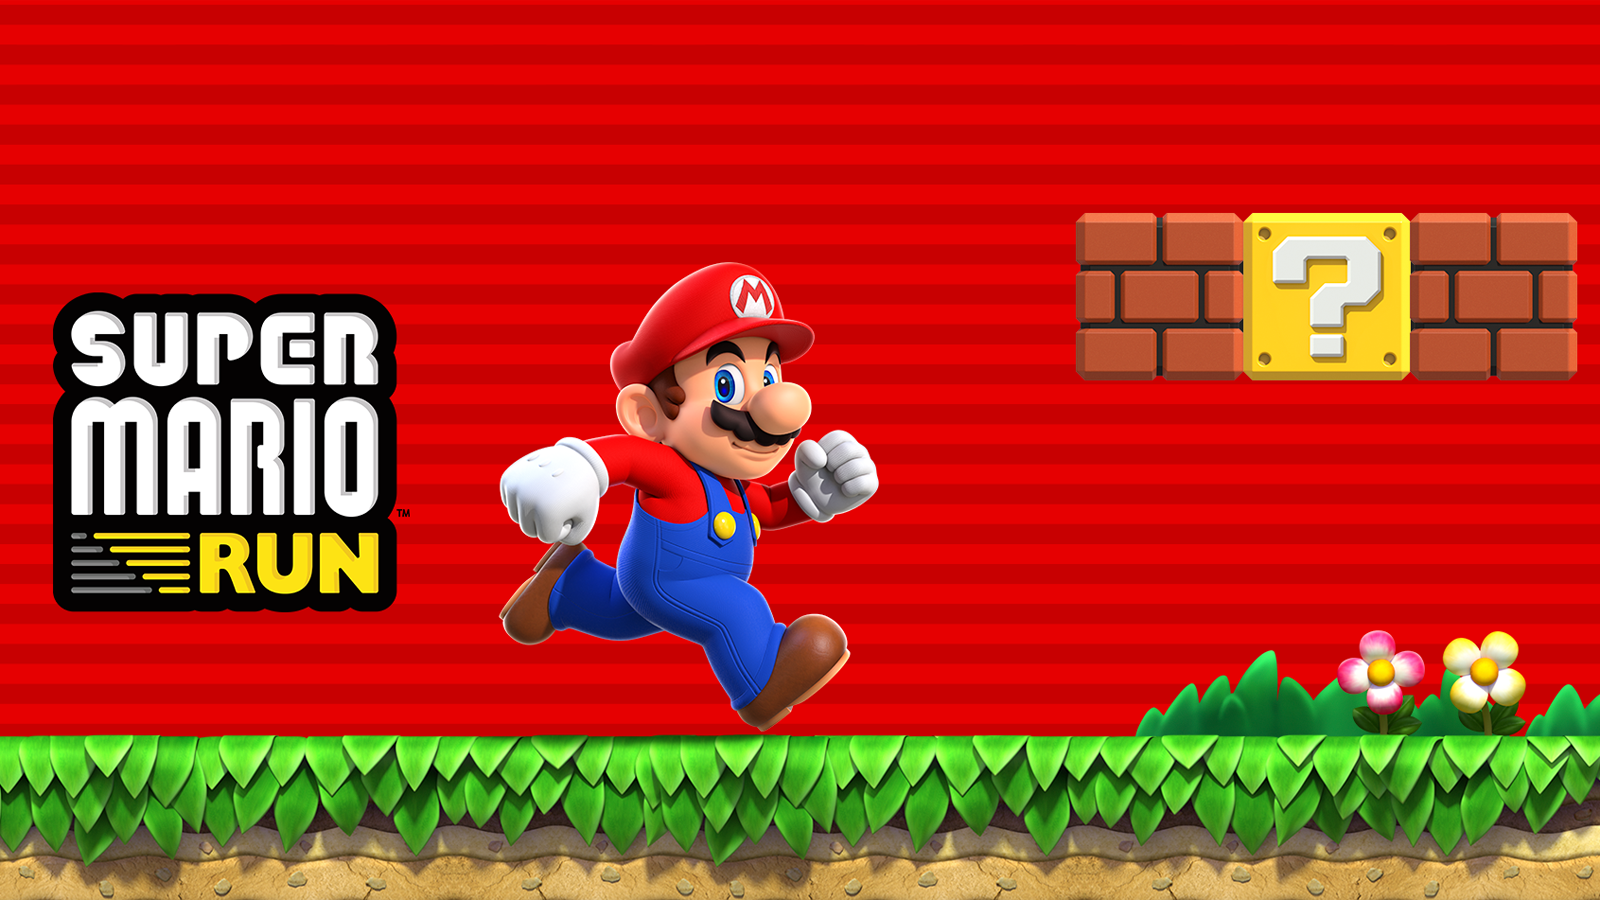 Download now: Super Mario Run now available for iPhone, iPad